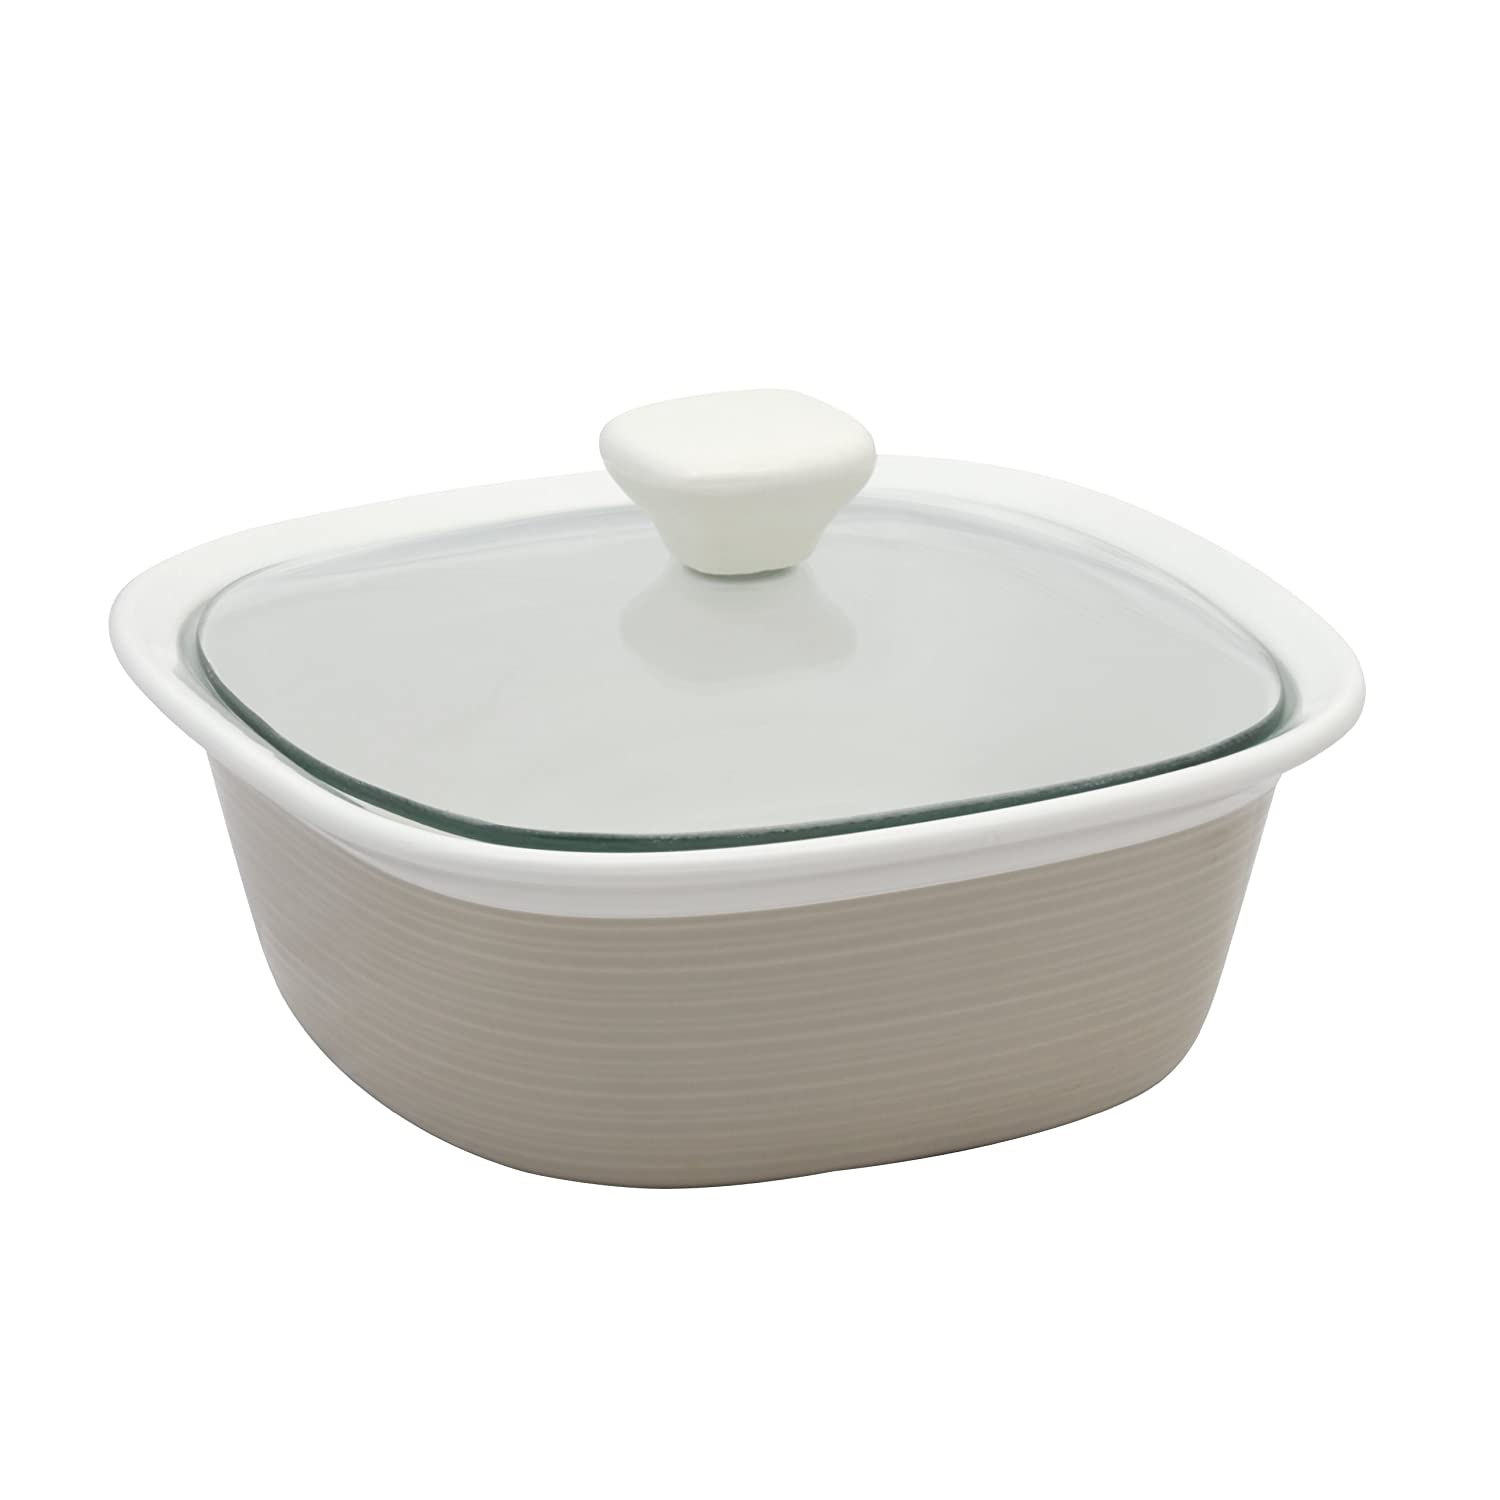 CorningWare Etch 1.5 Quart Square Dish with Glass Cover in Sand World Kitchen (PA) 1096828